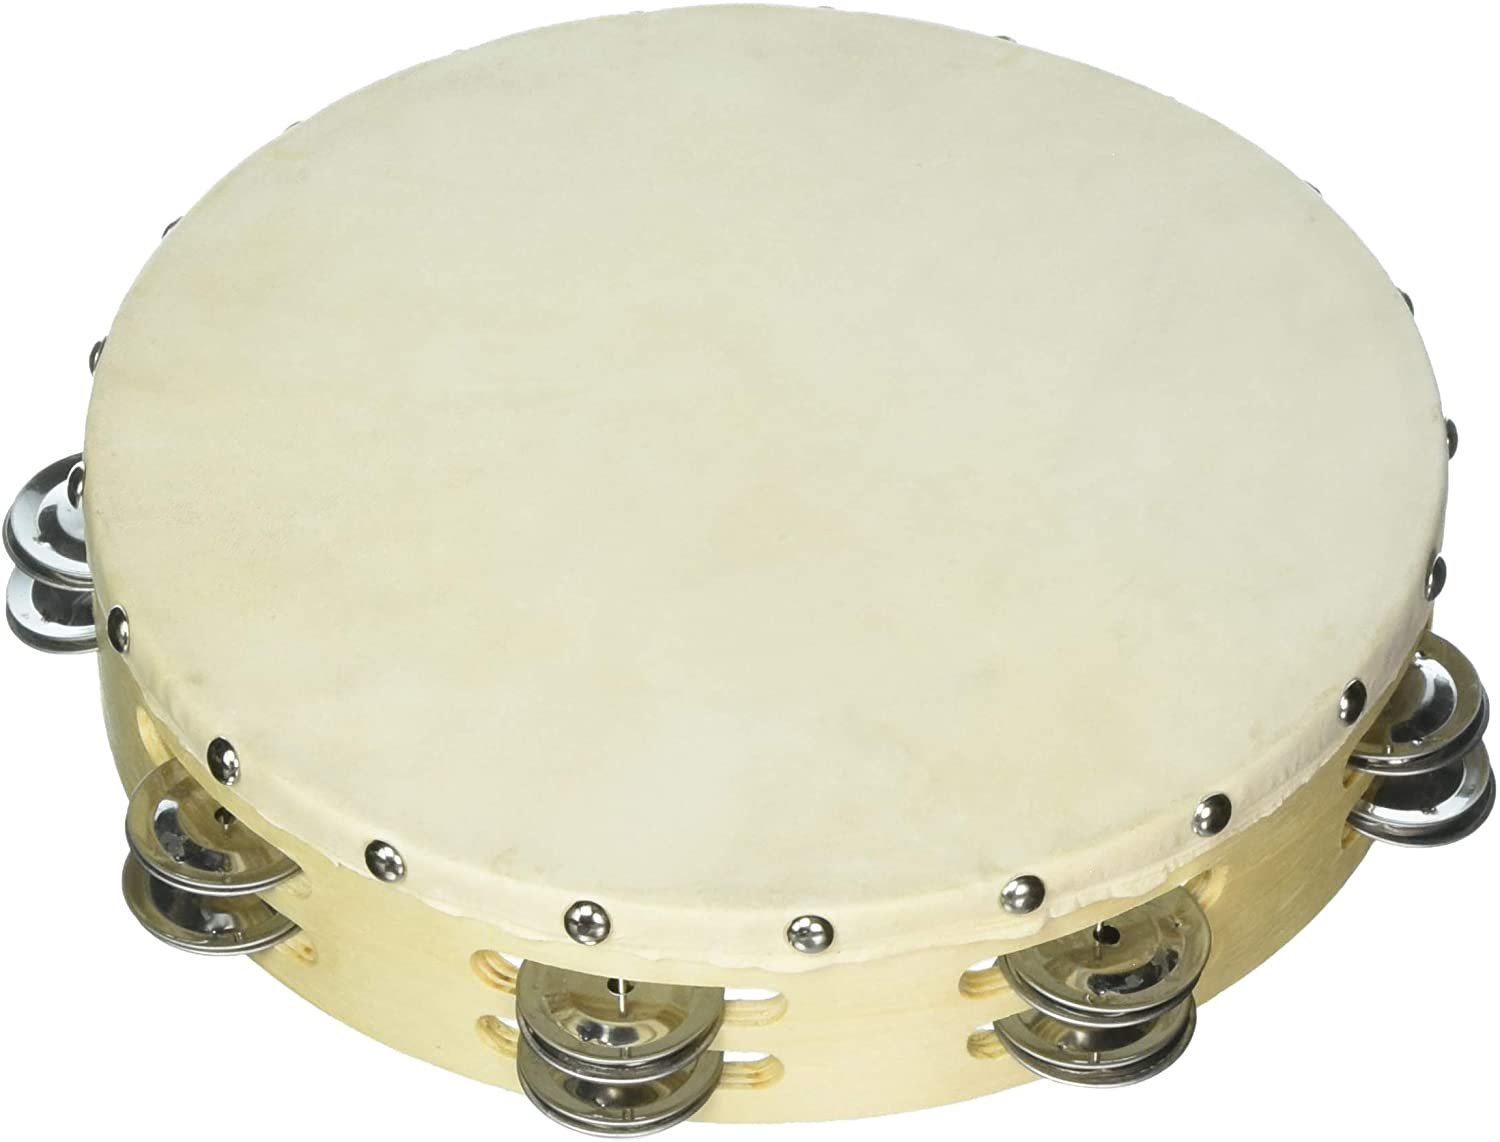 W310D 10 Tambourine With Skin Head With Double Row Of Jingles